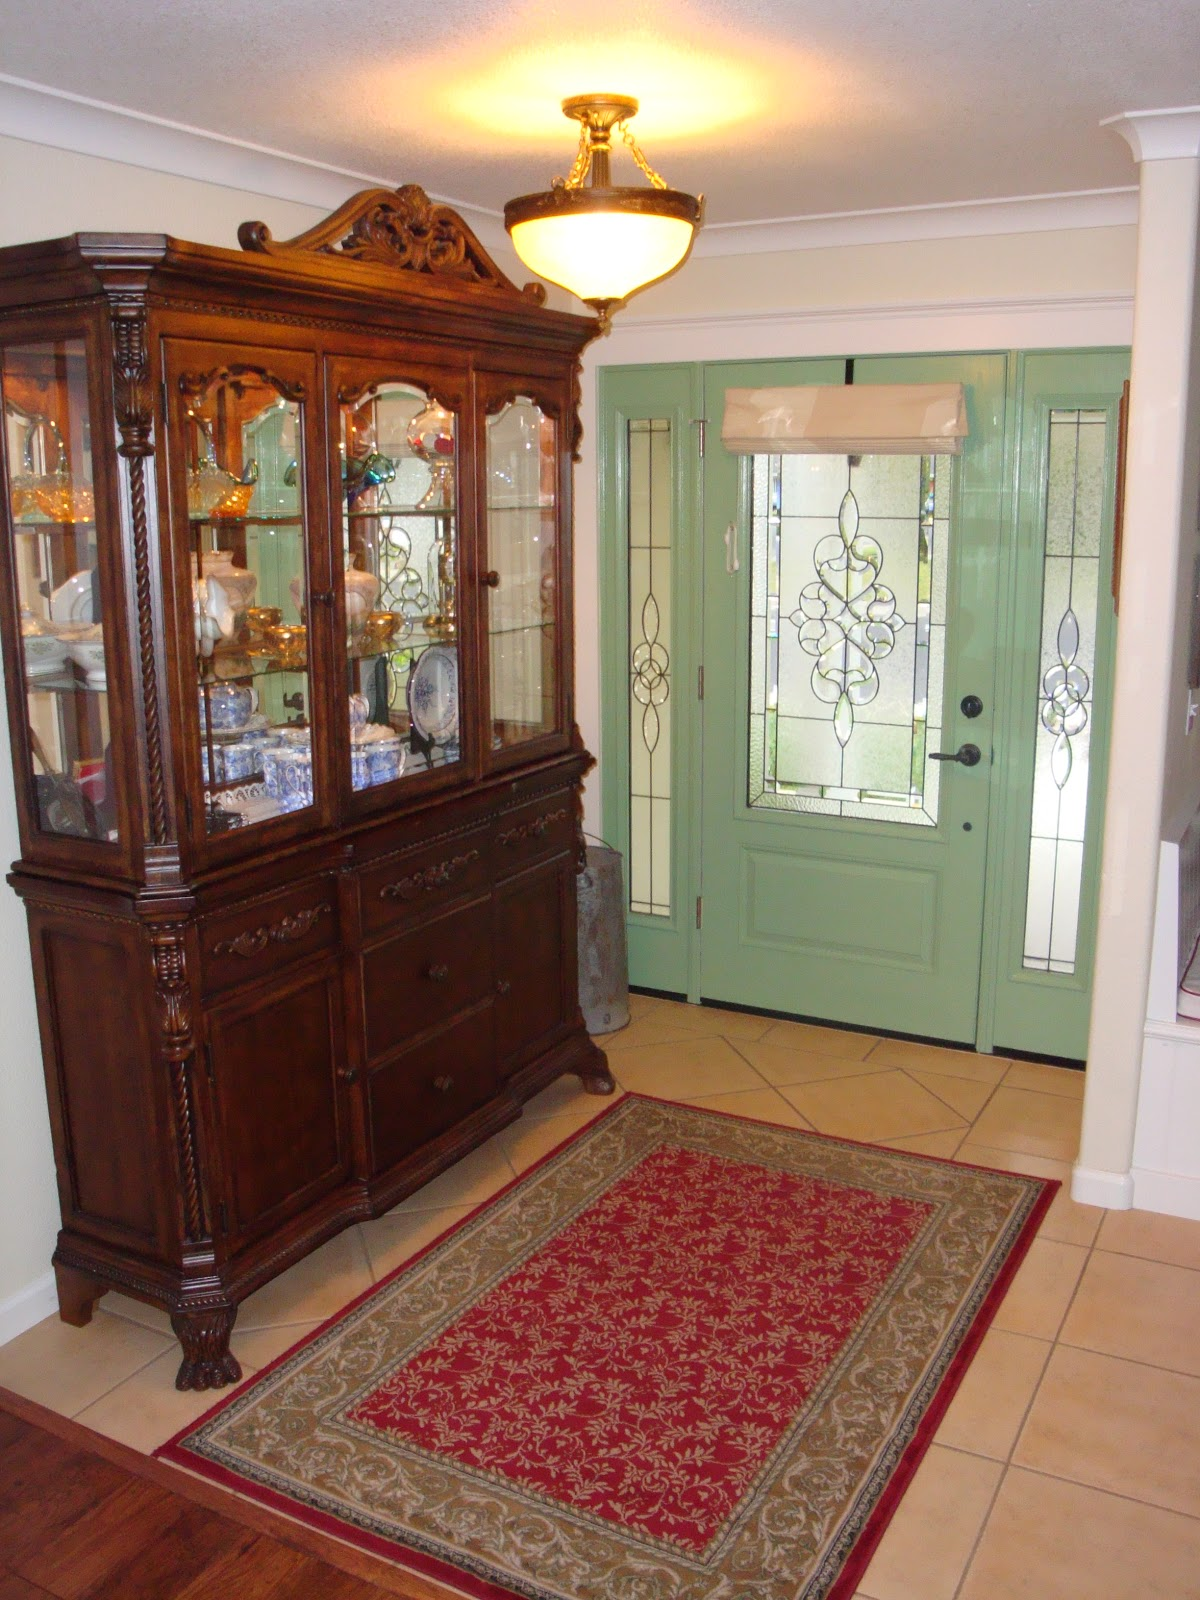 Hutch in the Entryway - Home Is Where The Heart Is: Hutch In The Entryway